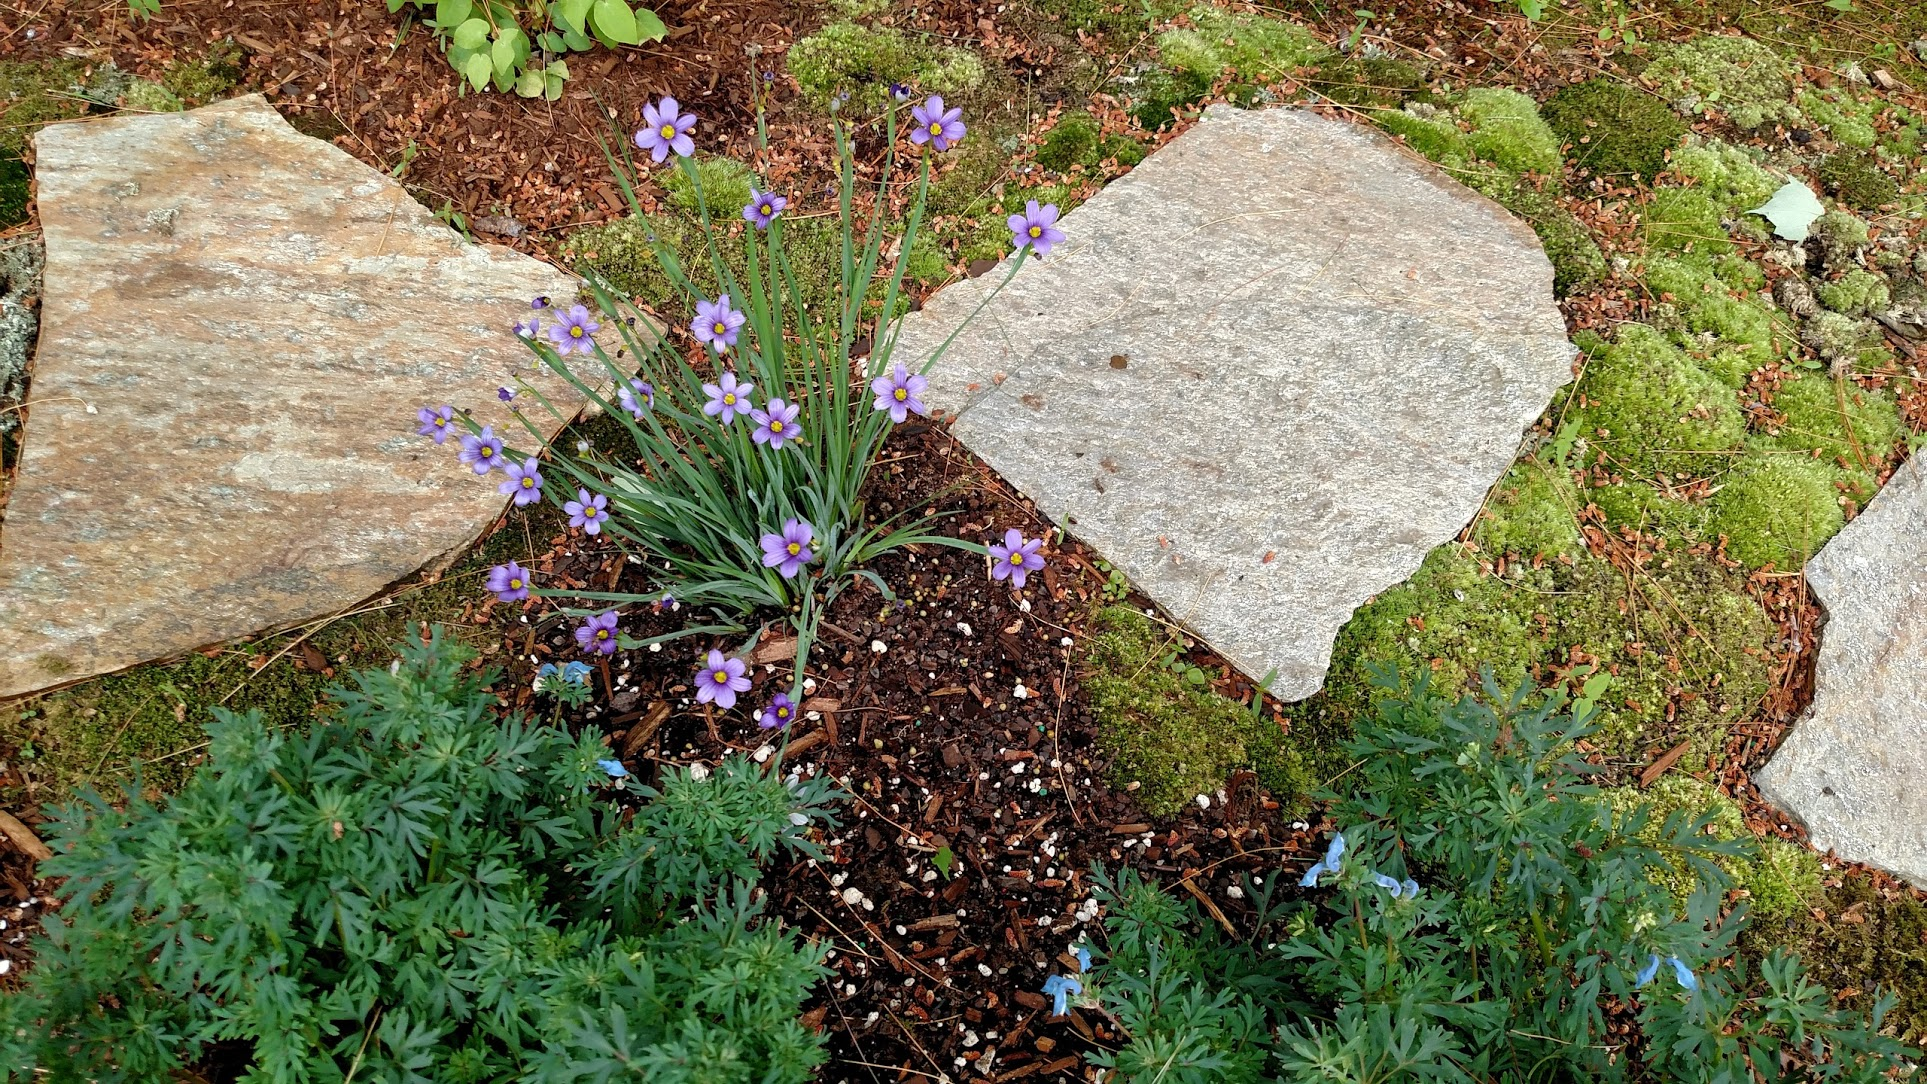 Blue-eyed grass & corydalis lutea